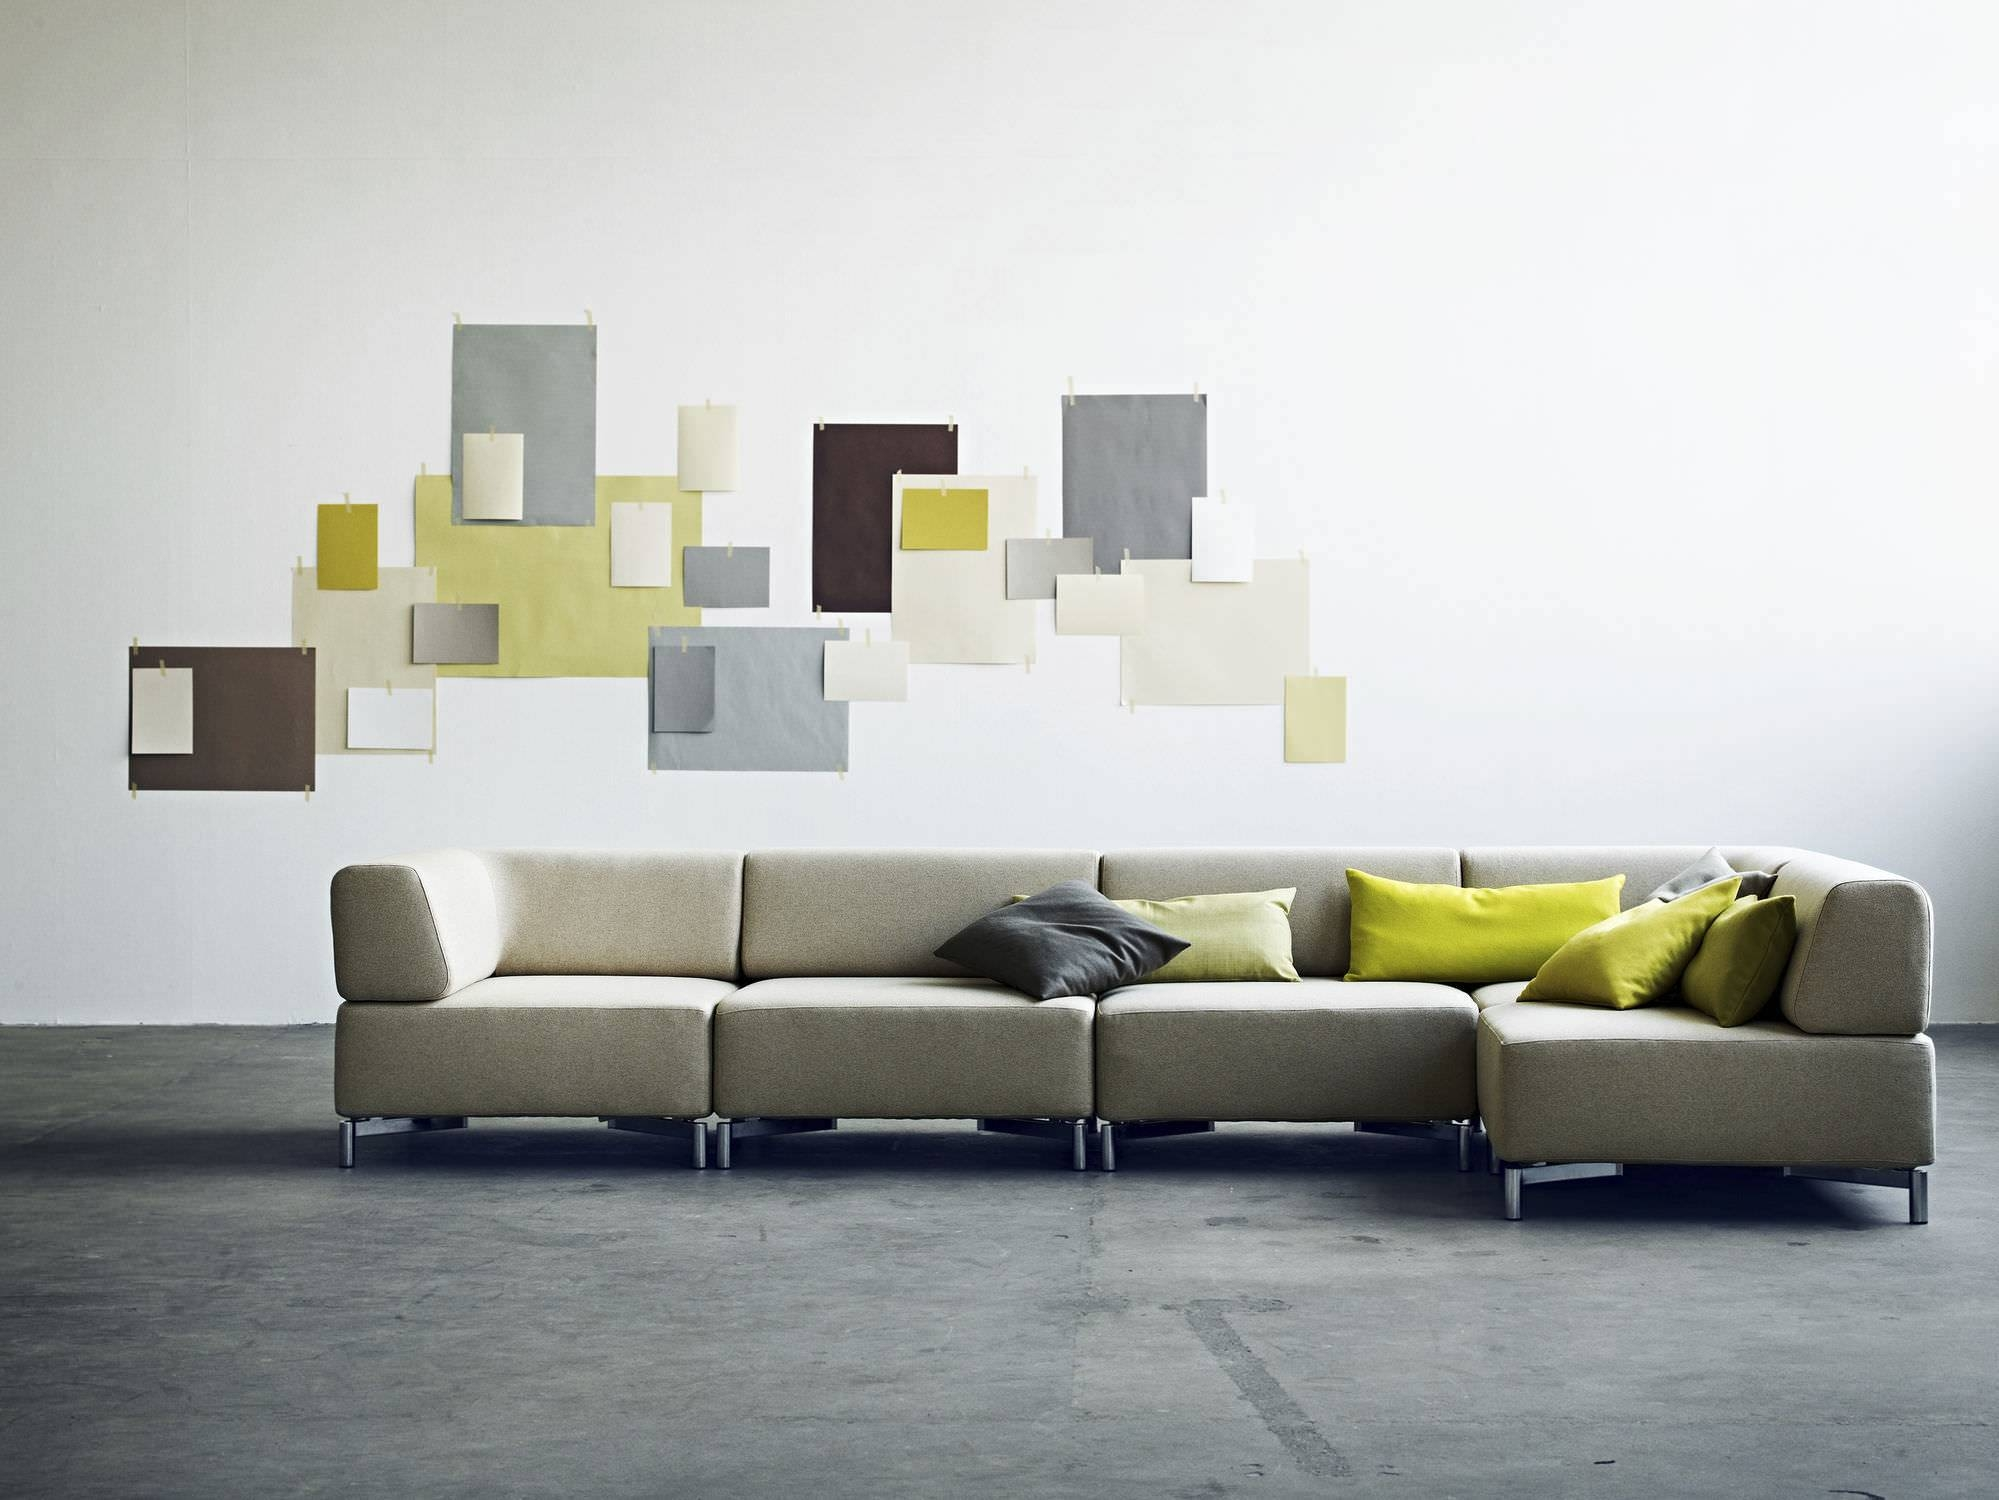 Modular Sofa / Contemporary / Fabric / With Removable Cover intended for Sofas With Removable Covers (Image 18 of 30)